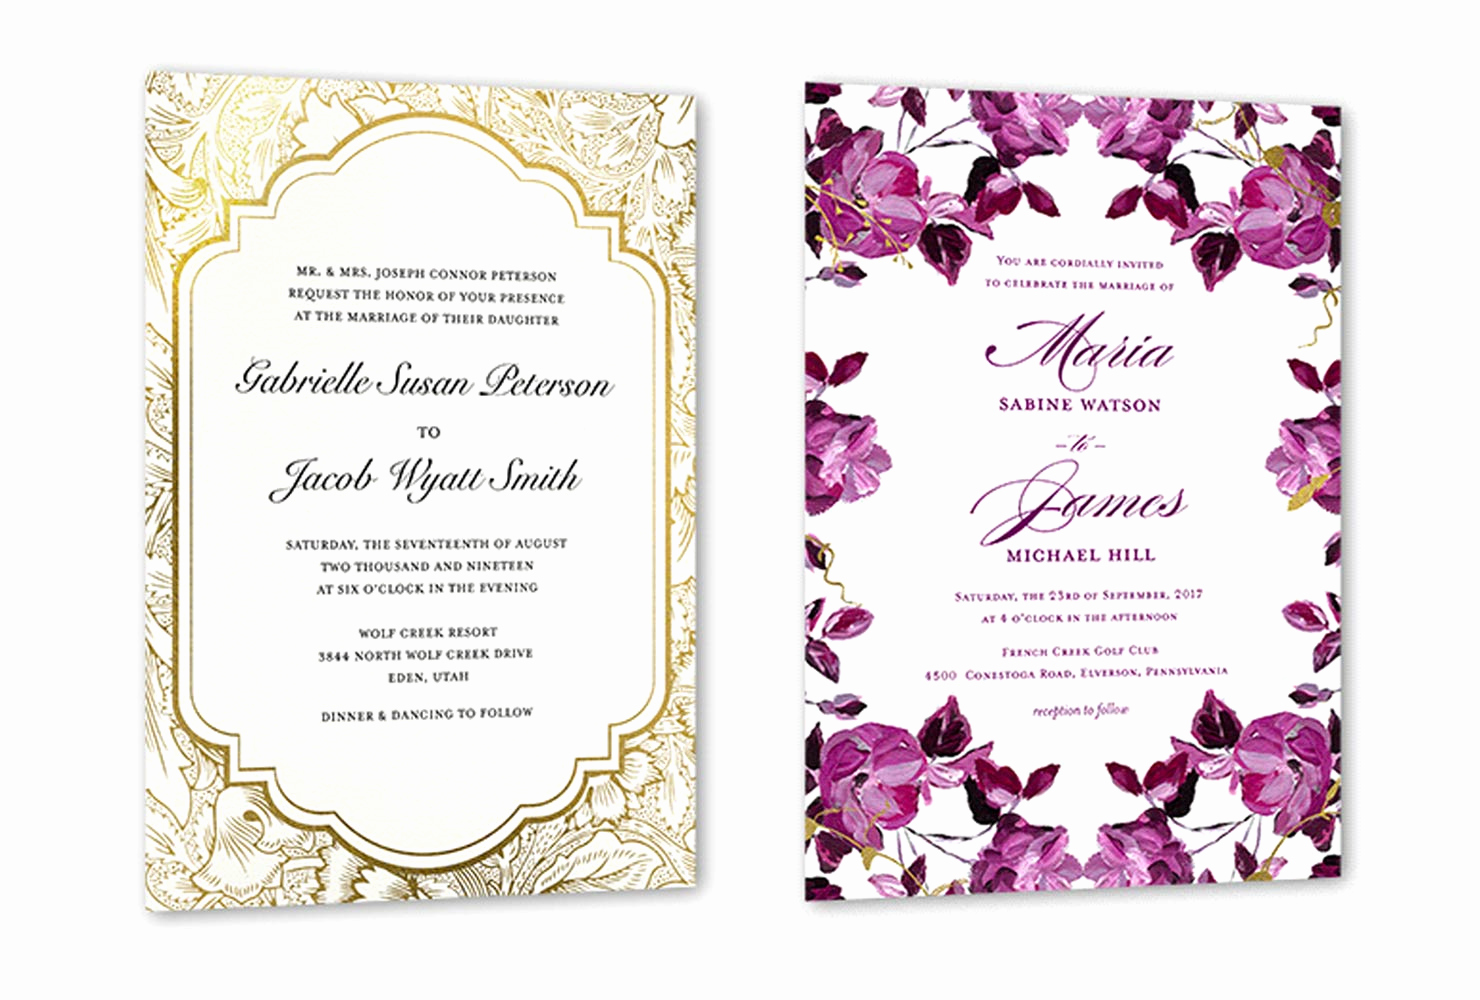 Father Daughter Dance Invitation Template Fresh 35 Wedding Invitation Wording Examples 2019